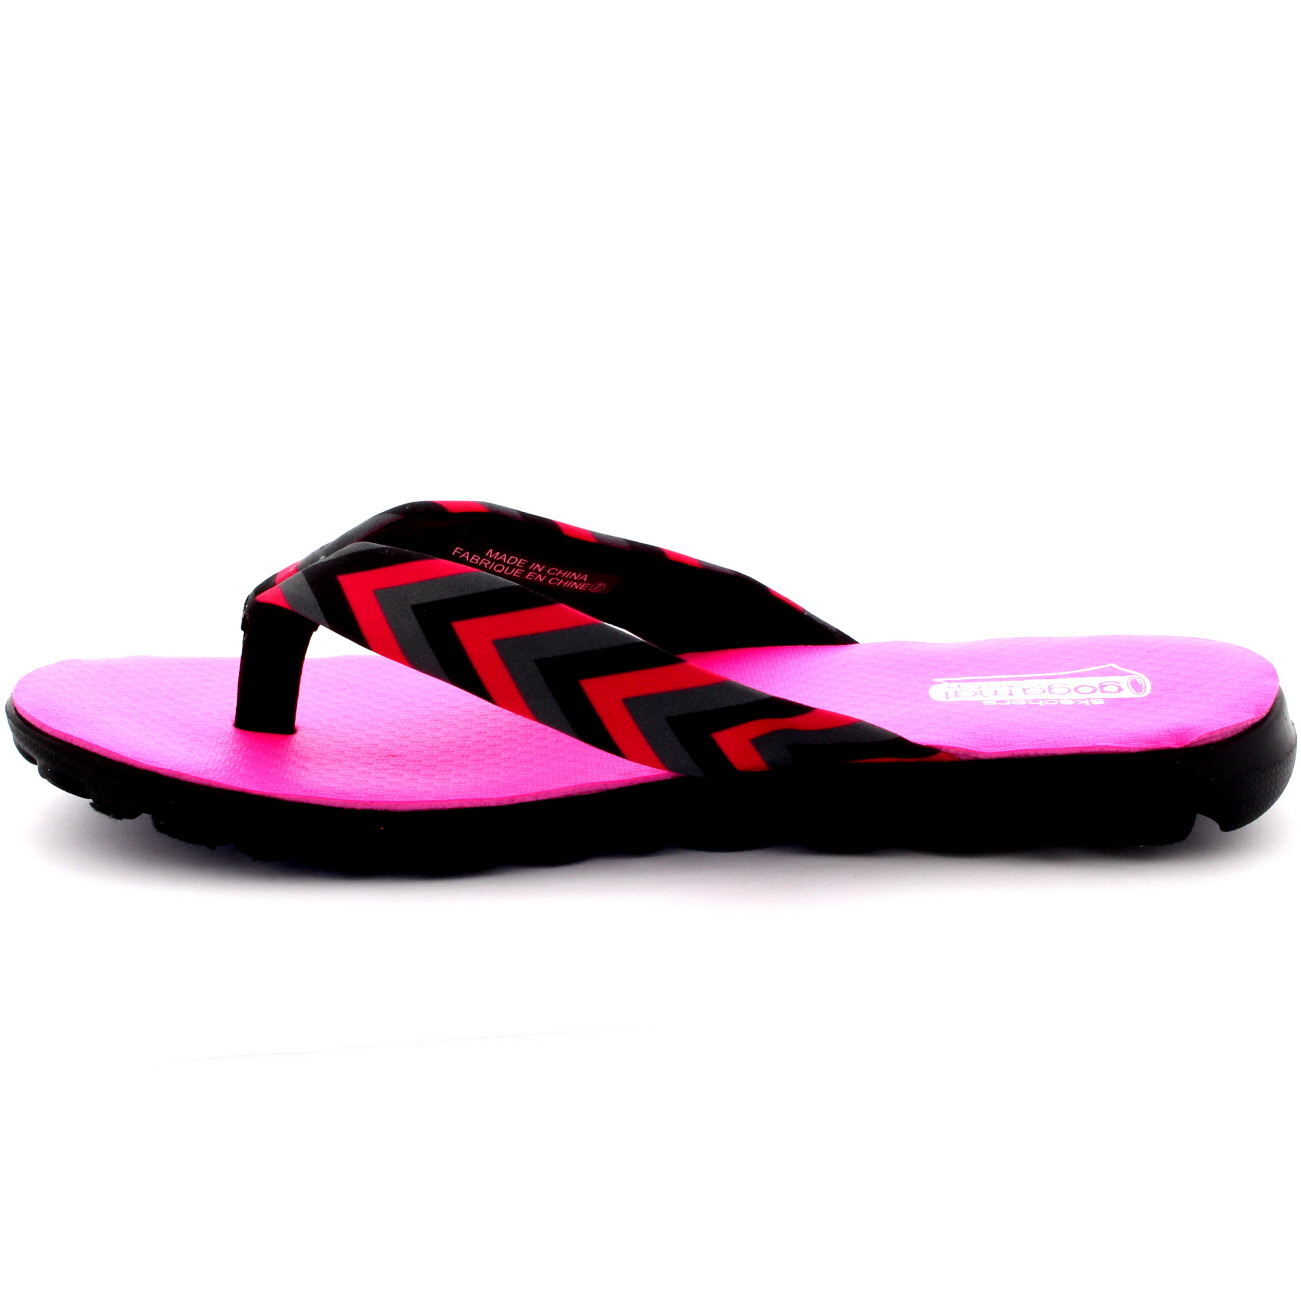 Yoga Shoes Skechers: Womens Skechers On The Go Arrow Yoga Foam Toe Post Sandals